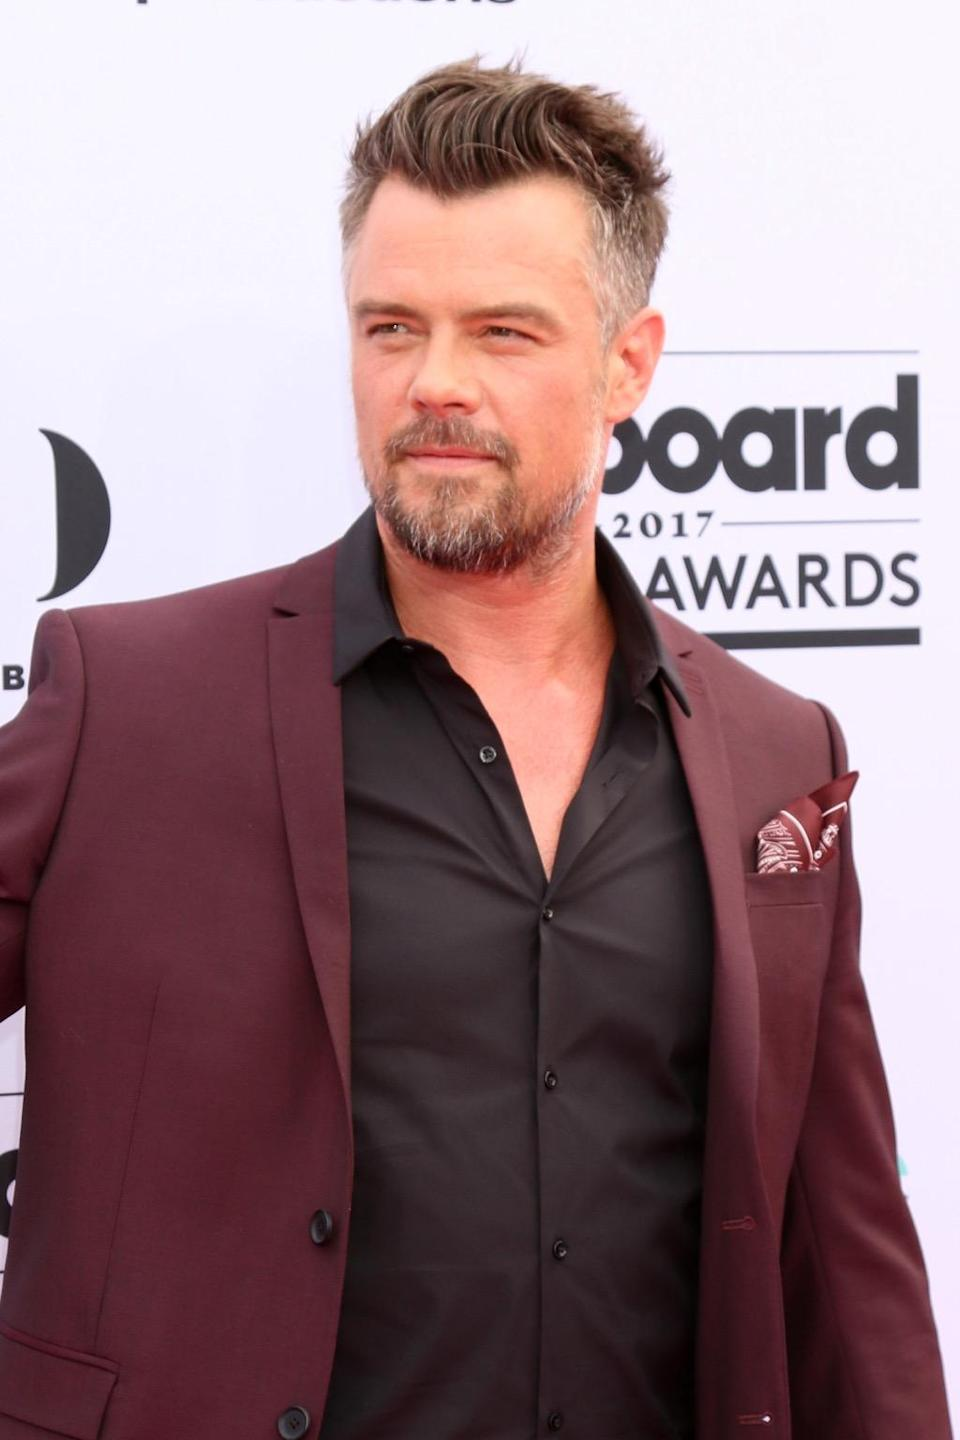 "Actor <strong>Josh Duhamel </strong>was born in <a href=""https://www.biography.com/actor/josh-duhamel"" rel=""nofollow noopener"" target=""_blank"" data-ylk=""slk:Minot, North Dakota"" class=""link rapid-noclick-resp"">Minot, North Dakota</a>, where he excelled at sports and eventually became quarterback for the Minot State University football team. Though he moved on to Hollywood, he still showed love for his home state, even becoming the face of North Dakota Tourism's advertising campaign. ""I've always been very vocal about the pride that I have in this state,"" Duhamel said of <a href=""https://www.ndtourism.com/articles/actor-josh-duhamel-shares-his-favorite-things-about-north-dakota"" rel=""nofollow noopener"" target=""_blank"" data-ylk=""slk:North Dakota"" class=""link rapid-noclick-resp"">North Dakota</a>. ""It's real. It's authentic. It's where I can find a quiet spot to fish or go mountain biking or golf a round with old friends. I love the open roads, the simplicity of the countryside, the people and the pace. It is the peace I find when I am there that I miss the most."""